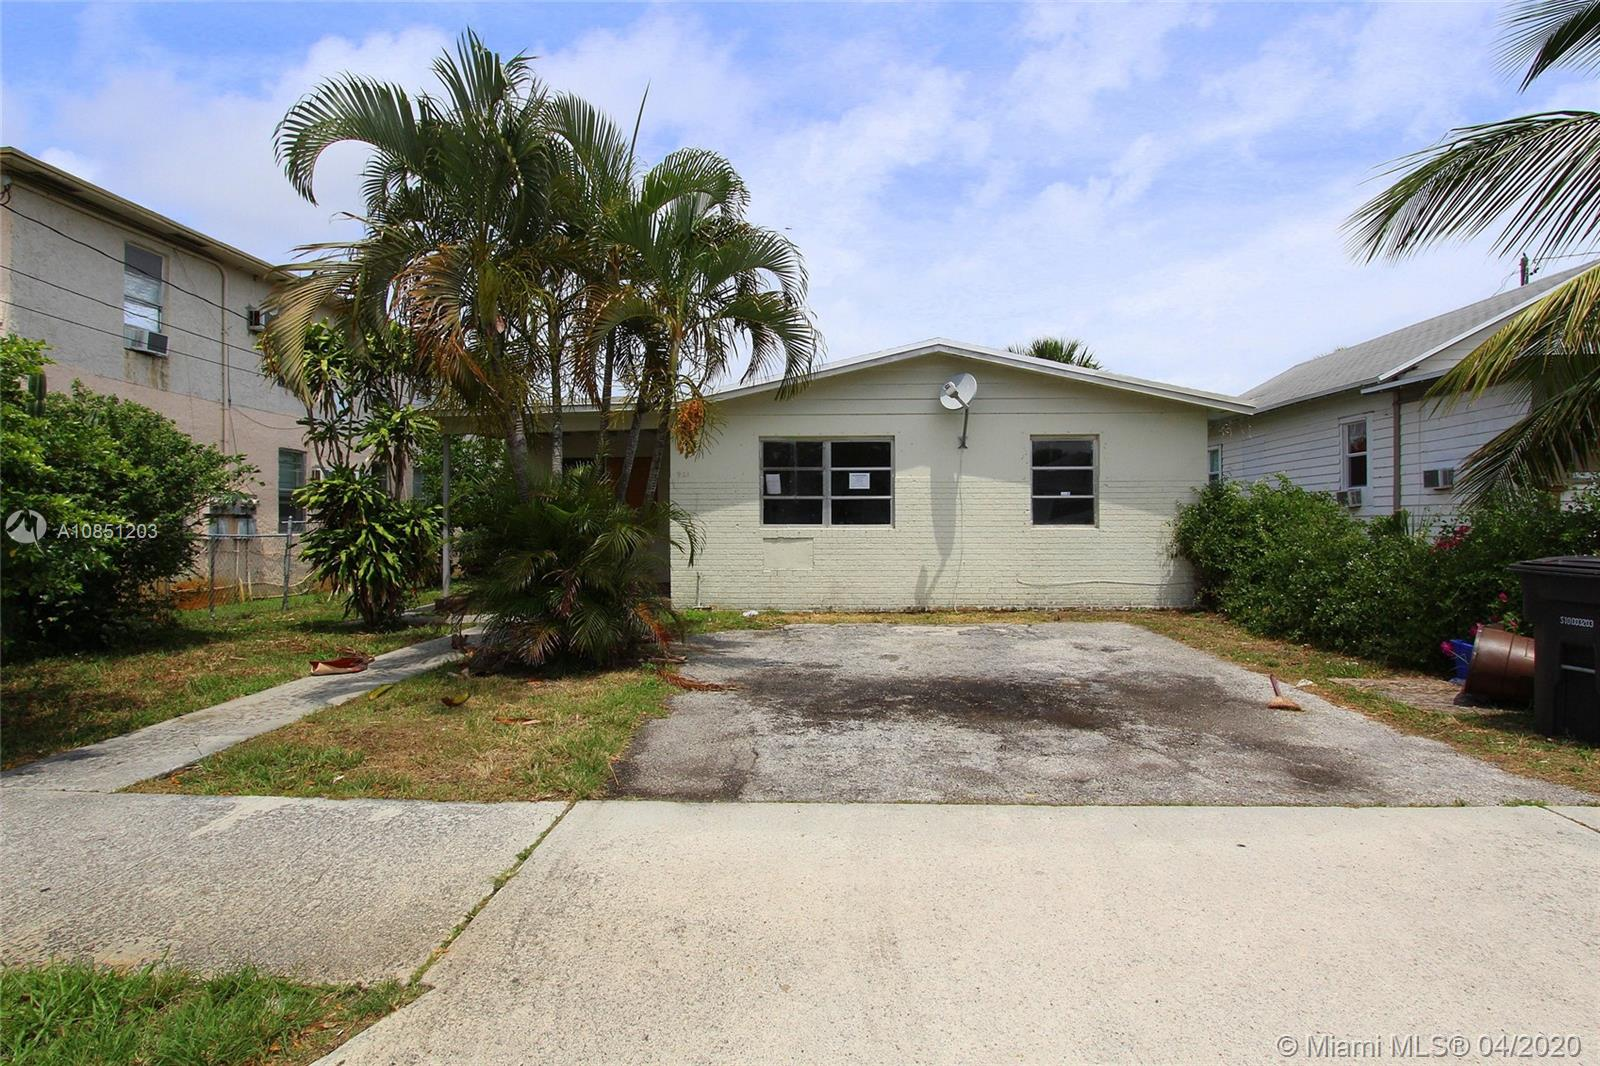 921 8th St, West Palm Beach, FL 33401